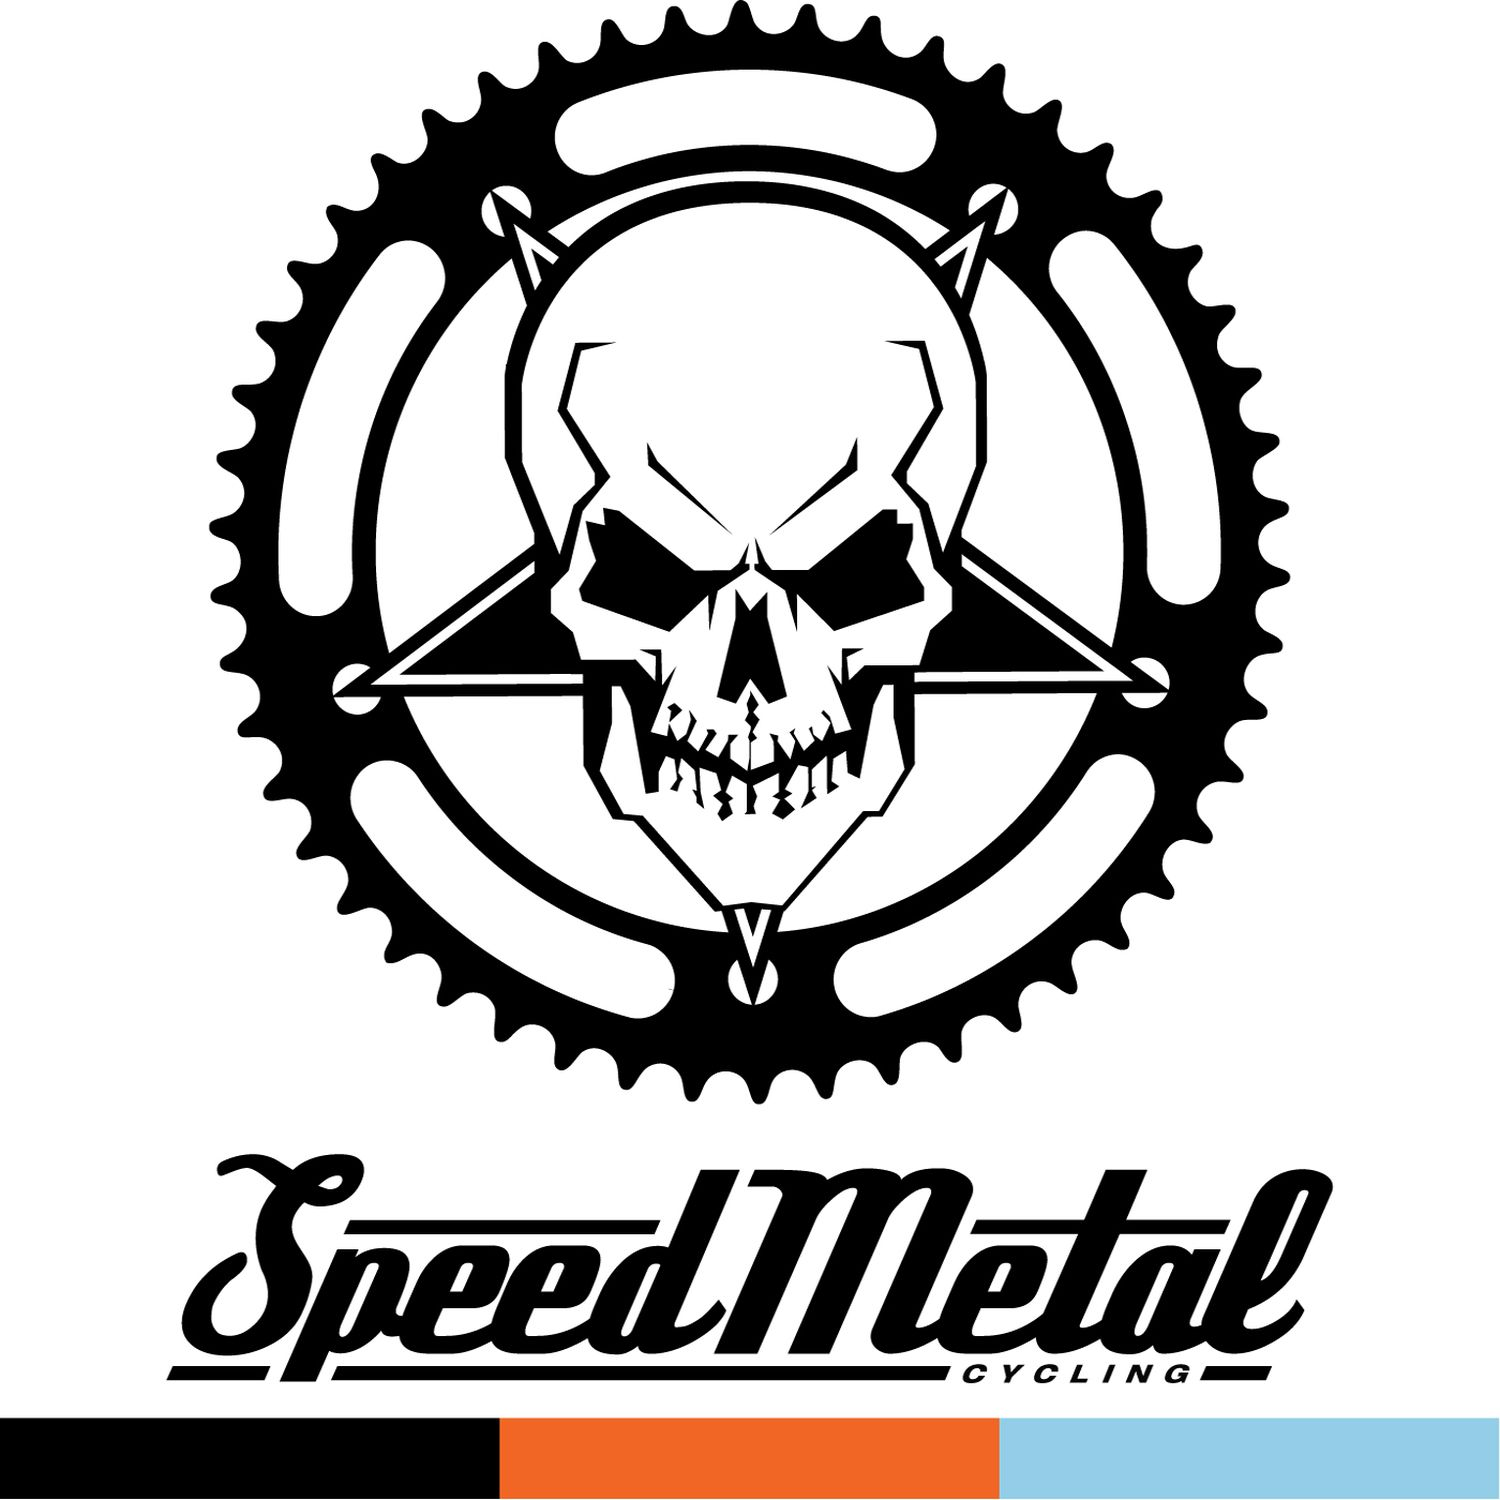 Speed Metal Cycling